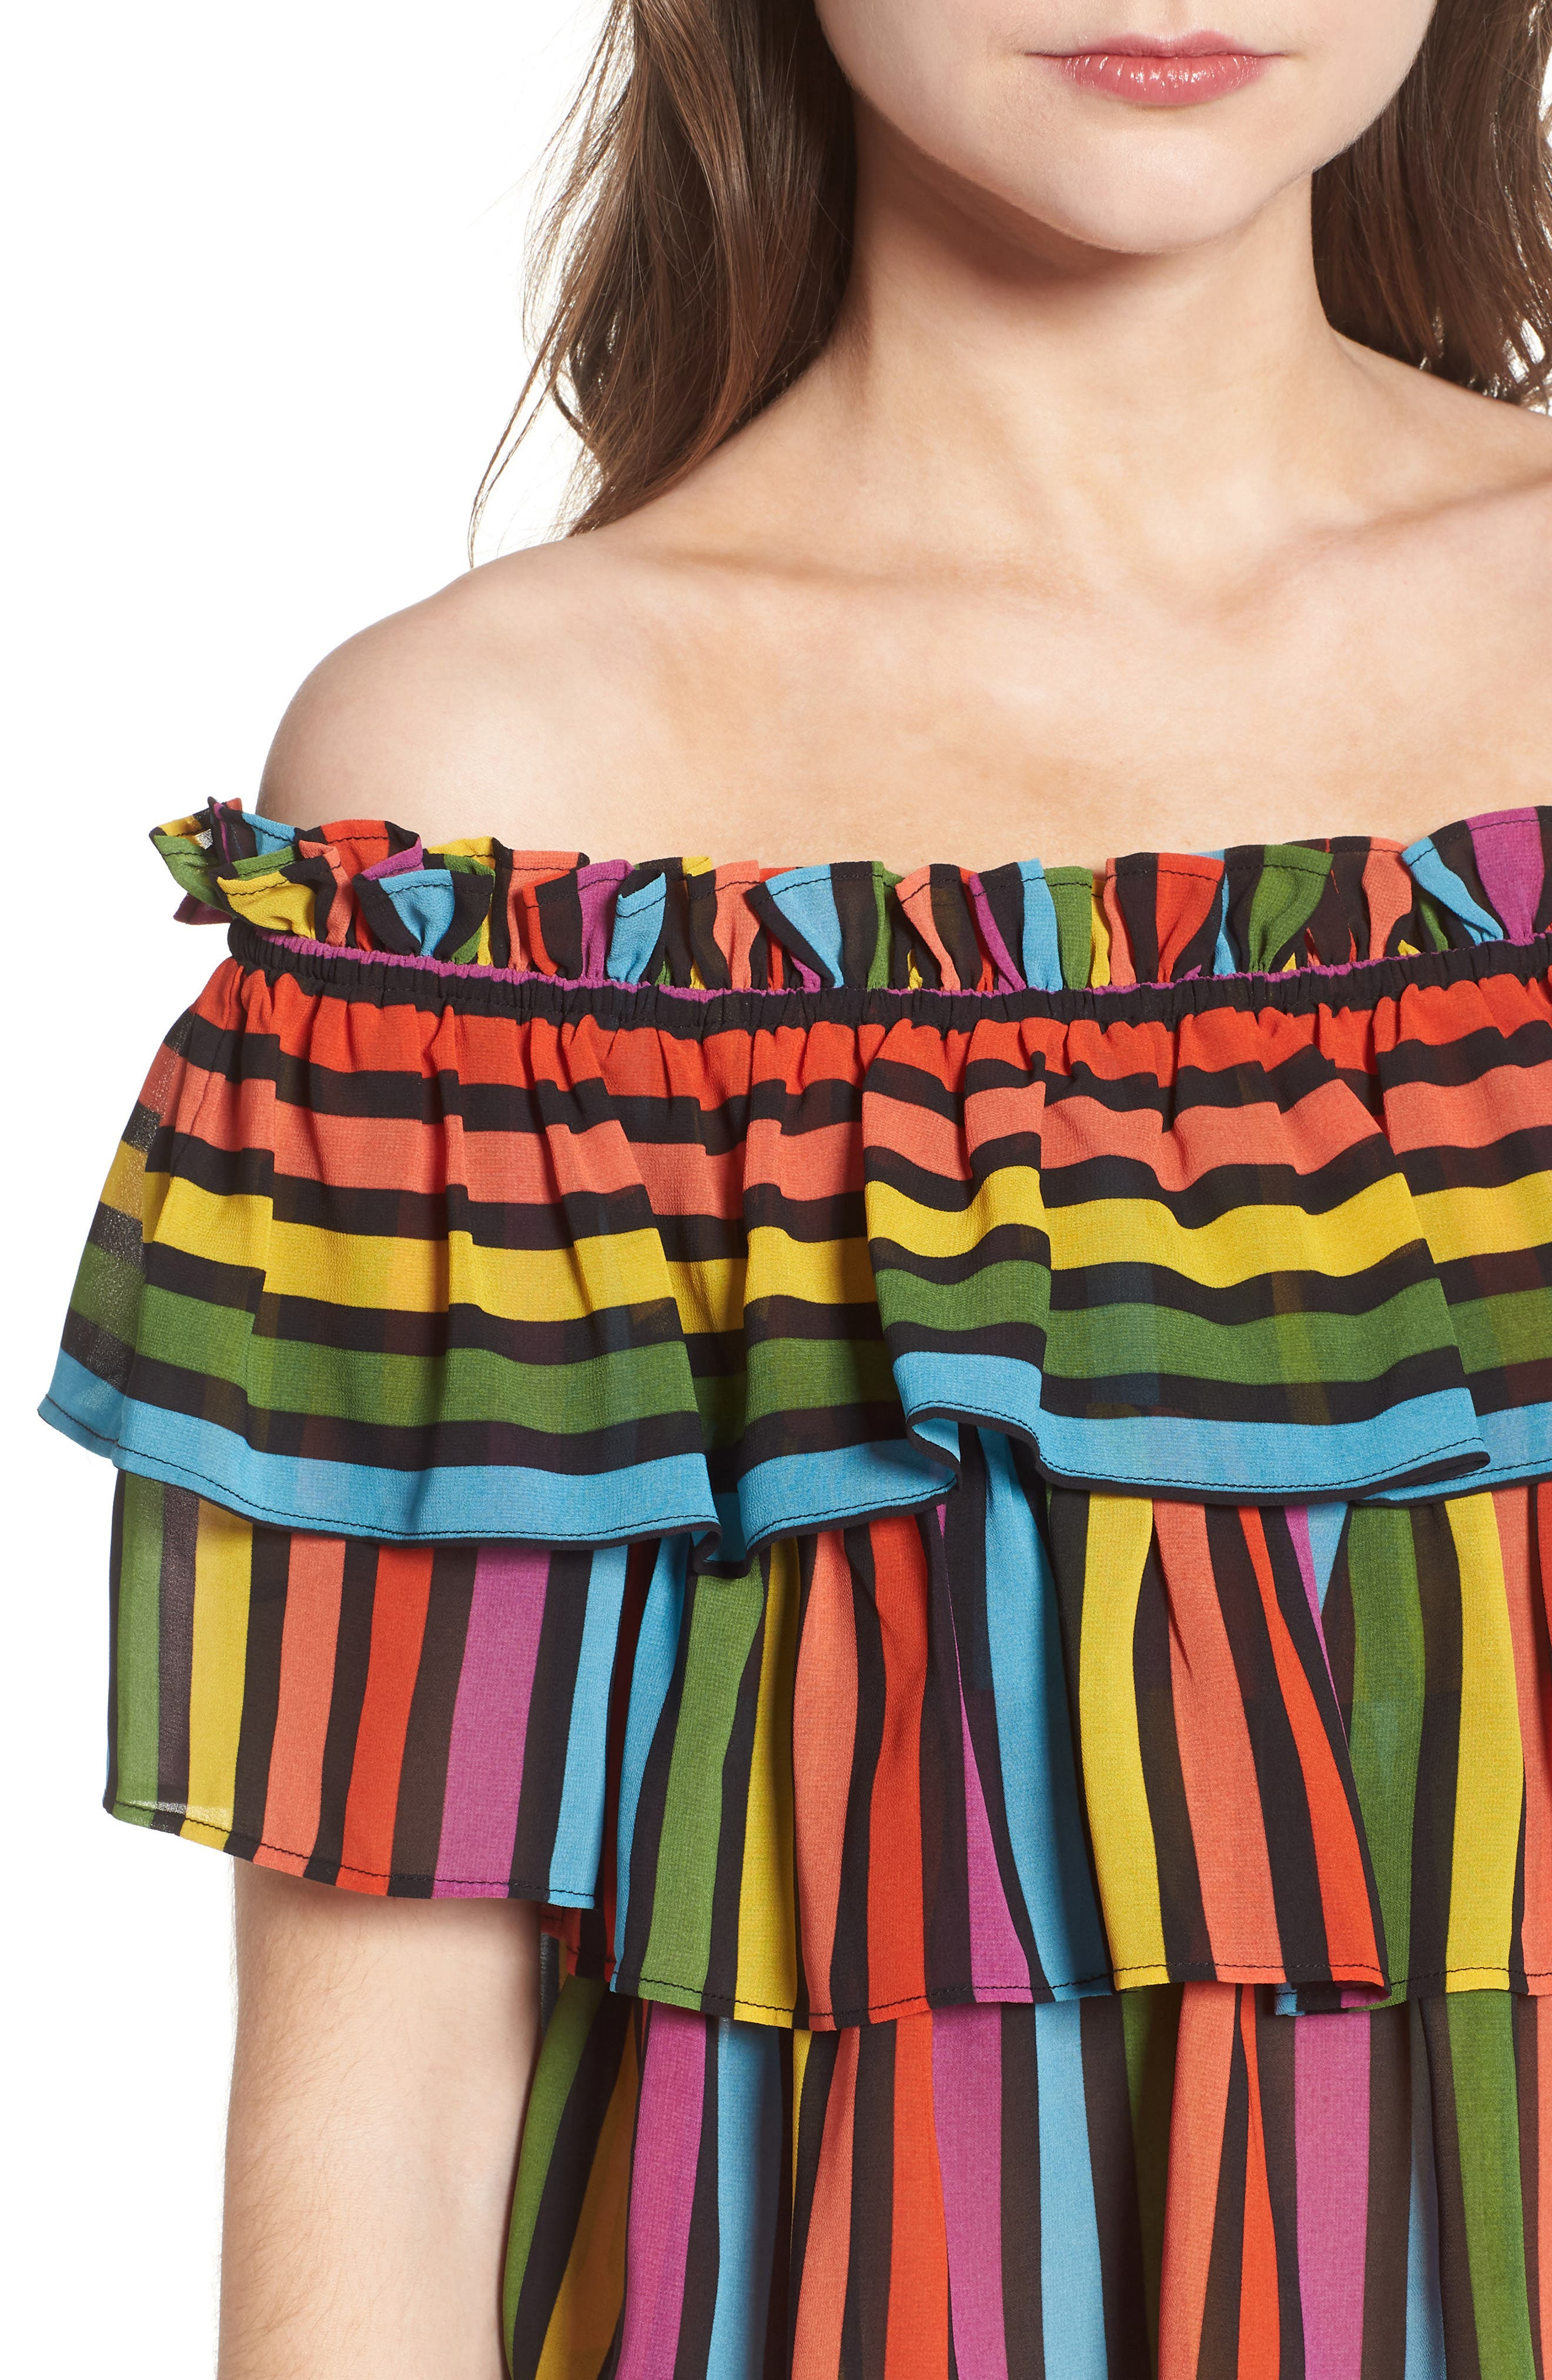 Toulon Tiered Ruffle Top,                             Alternate thumbnail 4, color,                             600